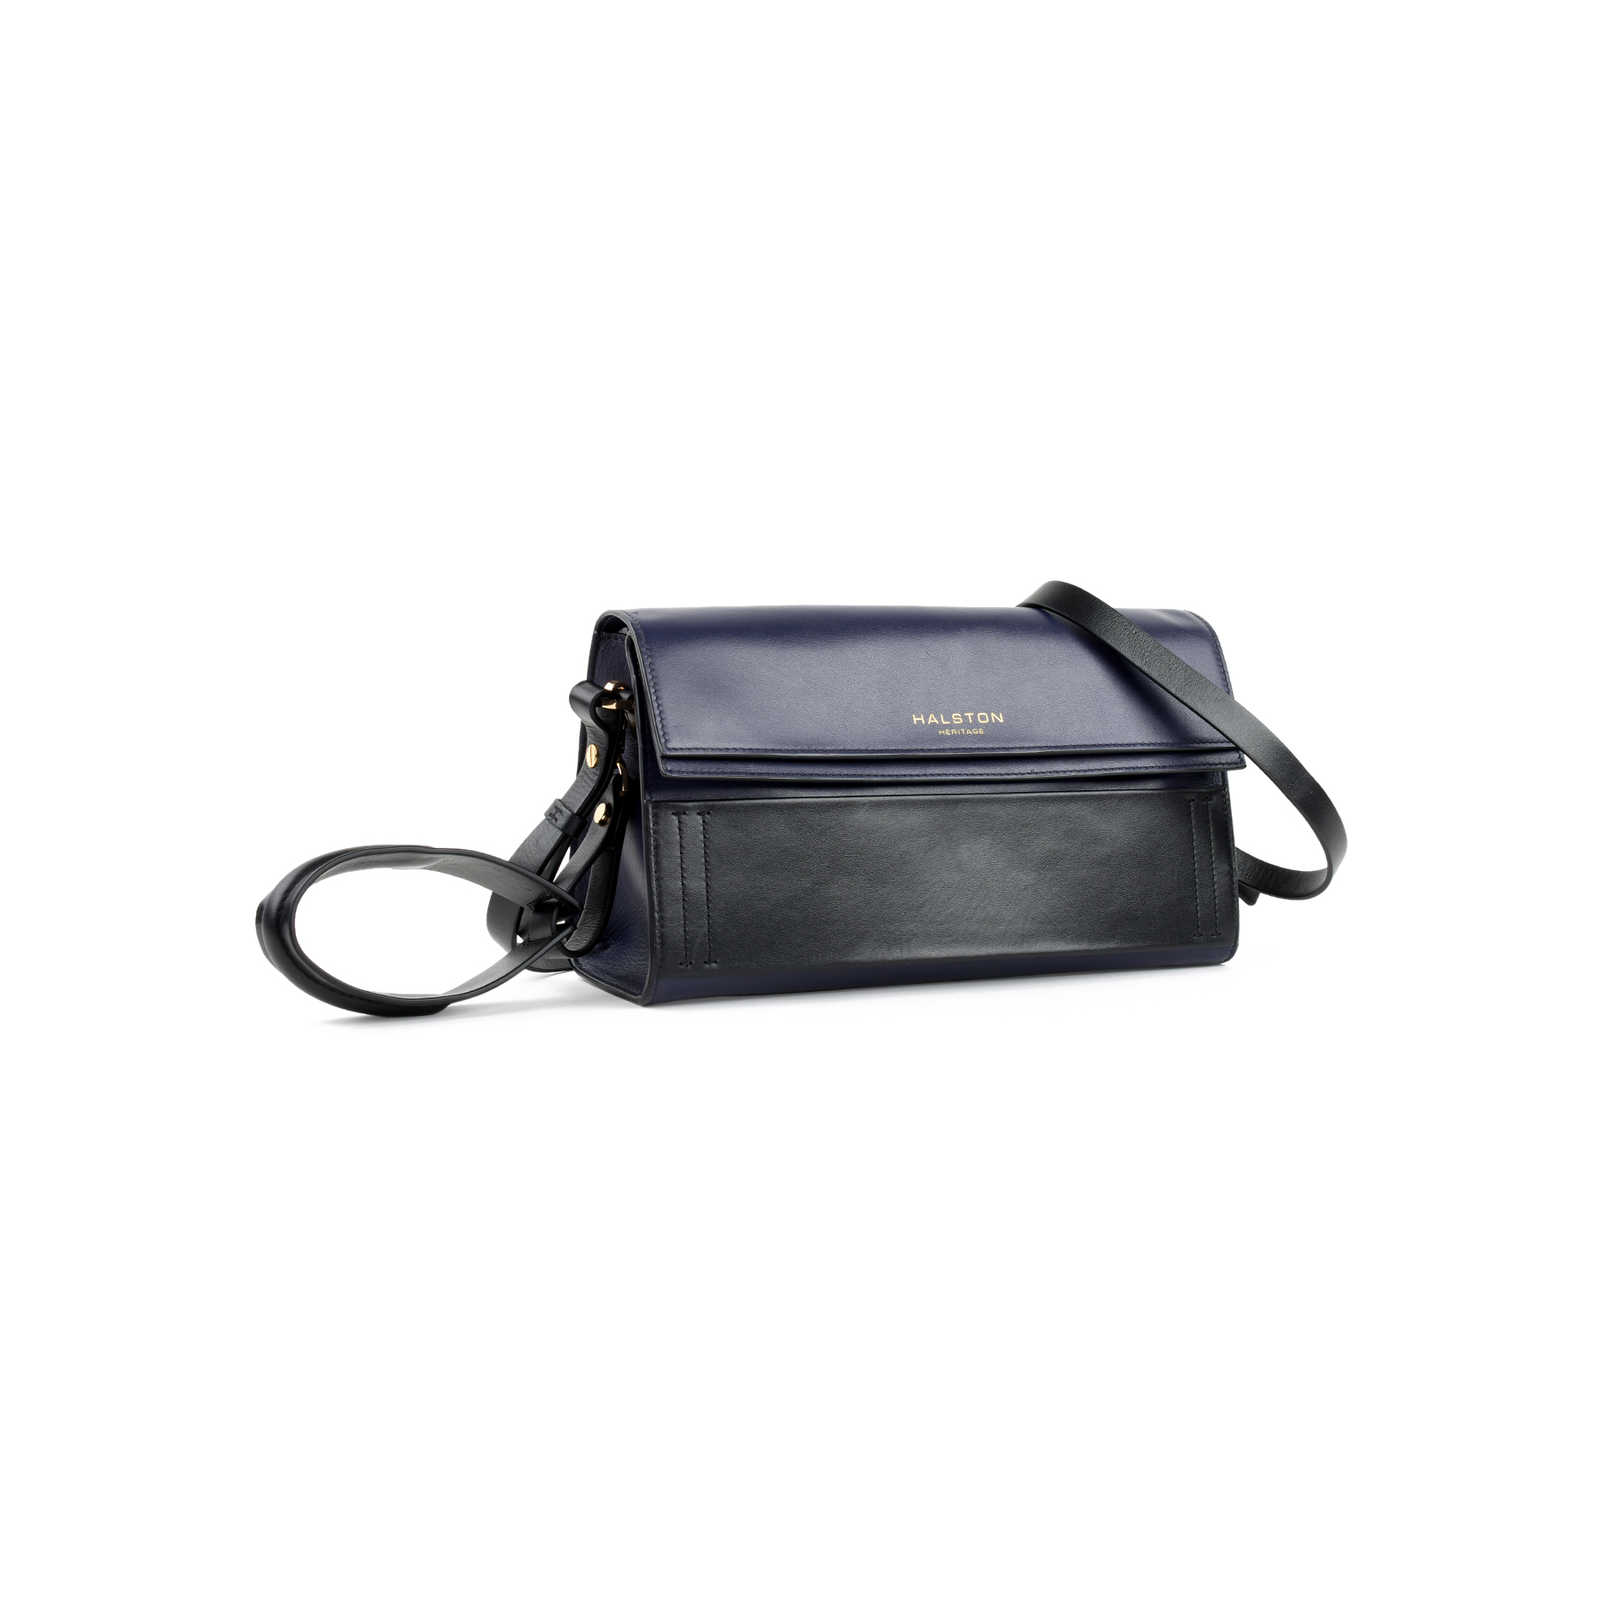 ... Authentic Second Hand Halston Heritage Foldover Crossbody Clutch Bag  (PSS-474-00002) ... 10dd2574f2fd2